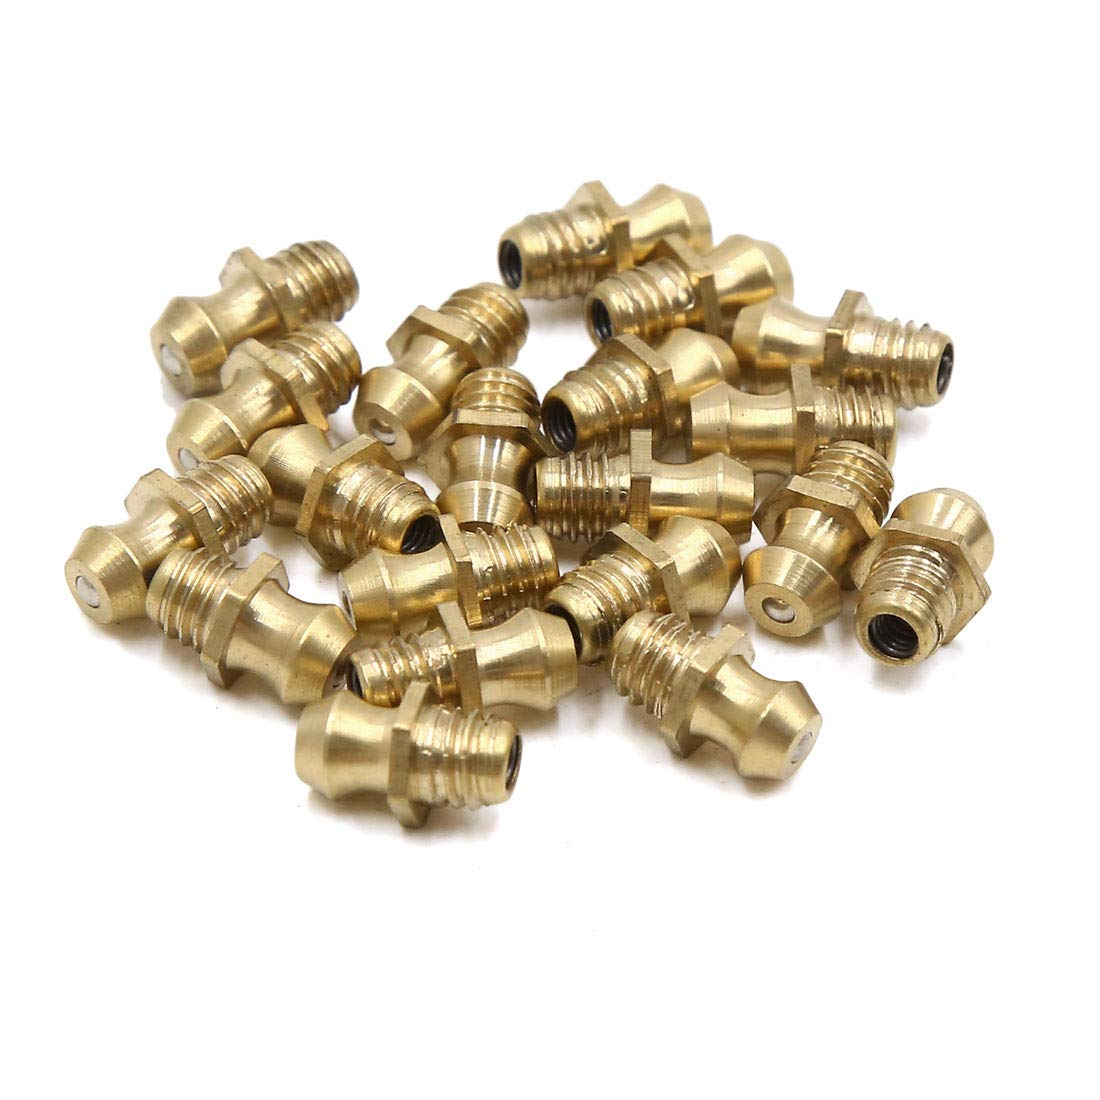 Uxcell 20pcs M6 X 1 Thread Brass Straight Grease Nipple Fitting For Motorcycle Car